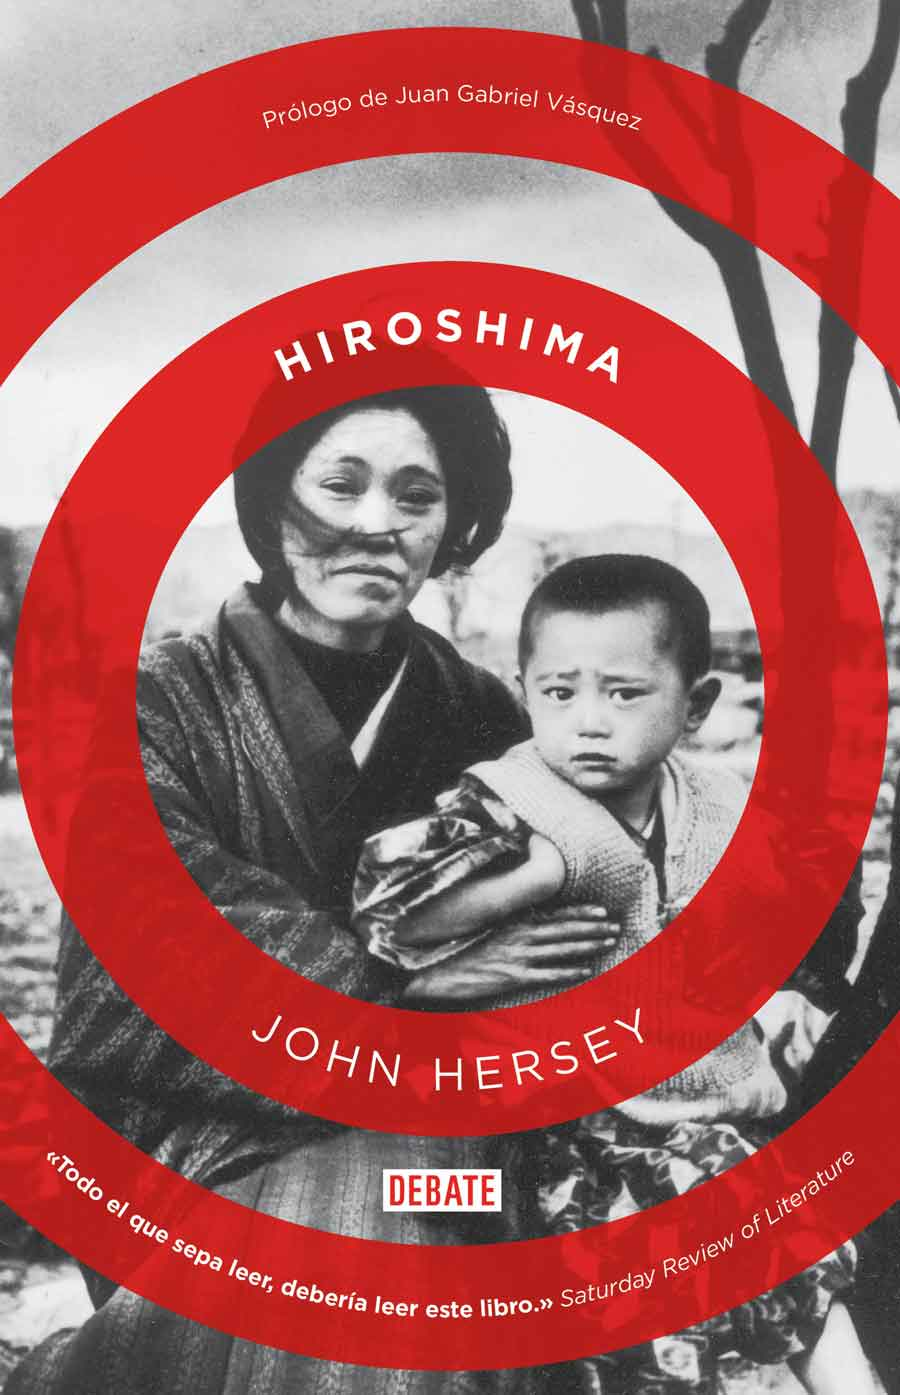 essays on hiroshima by john hersey Hiroshima study guide contains a biography of john hersey, literature essays, quiz questions, major themes, characters, and a full summary and analysis.